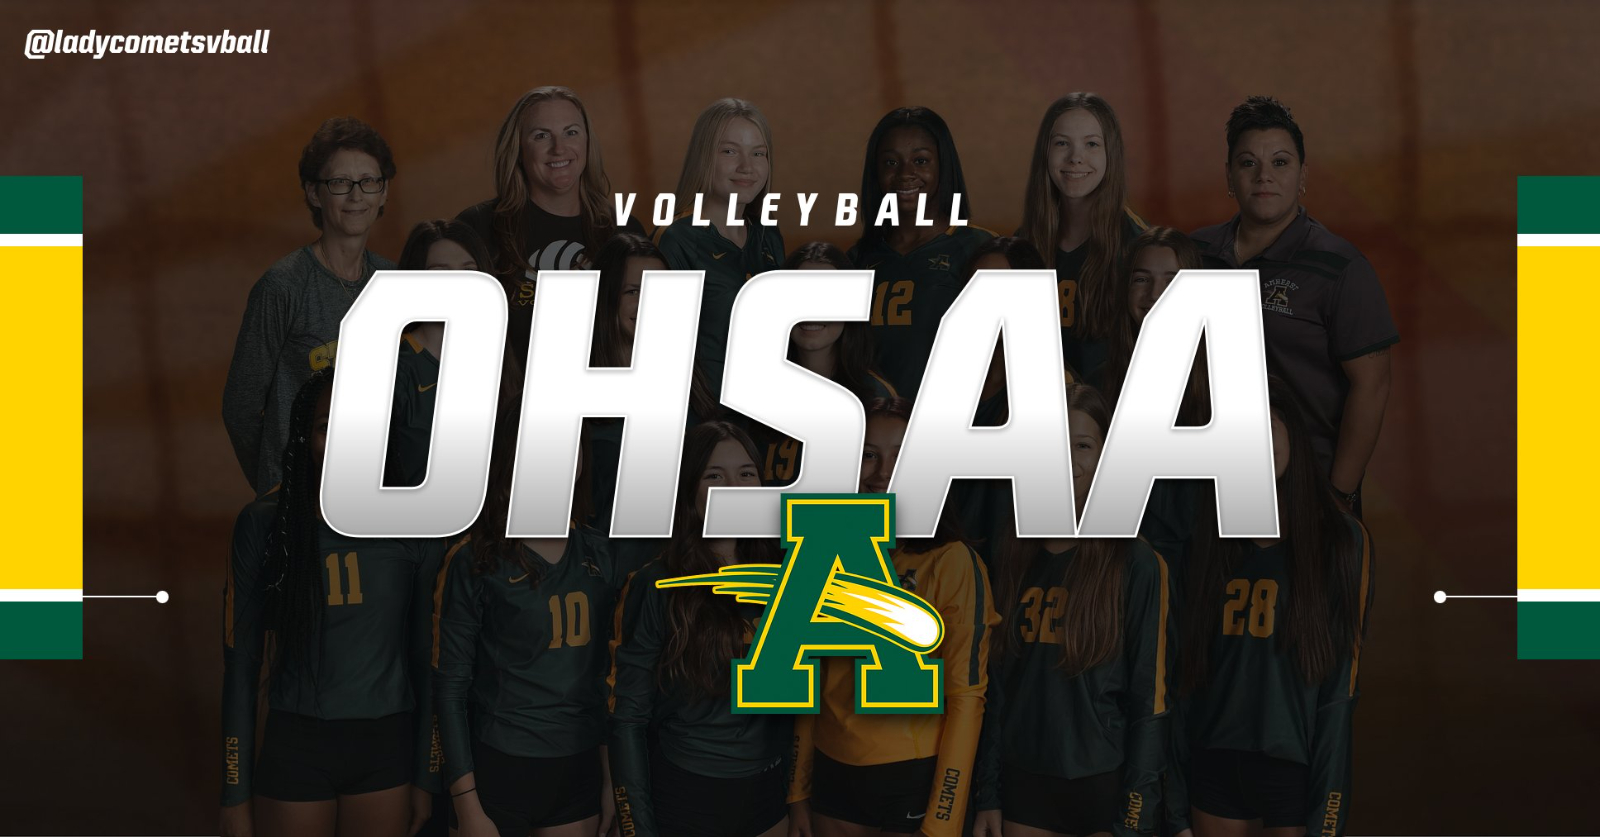 OHSAA Postseason Information for @ladycometsvball